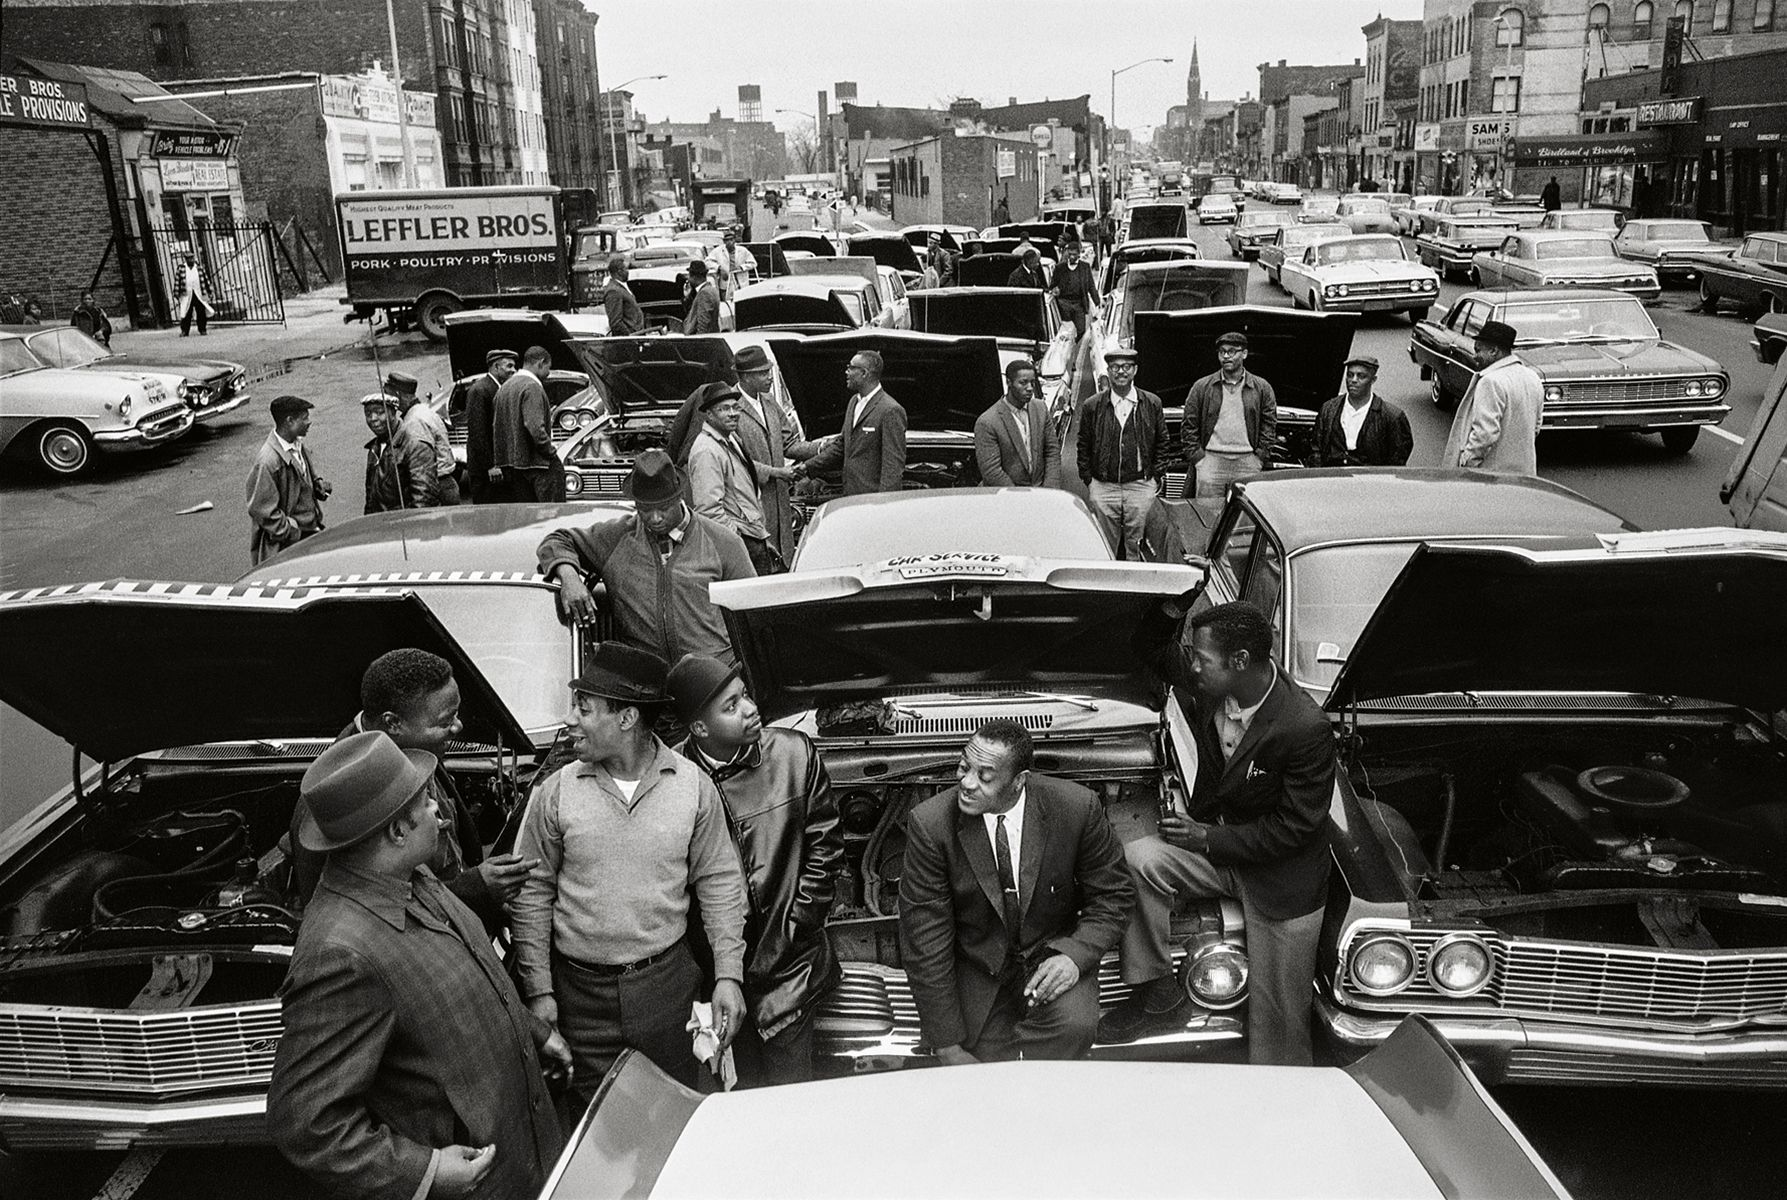 Brooklyn CORE Car Stall-In, 1964, 16 x 20 Inches, Silver Gelatin Photograph, Edition of 25